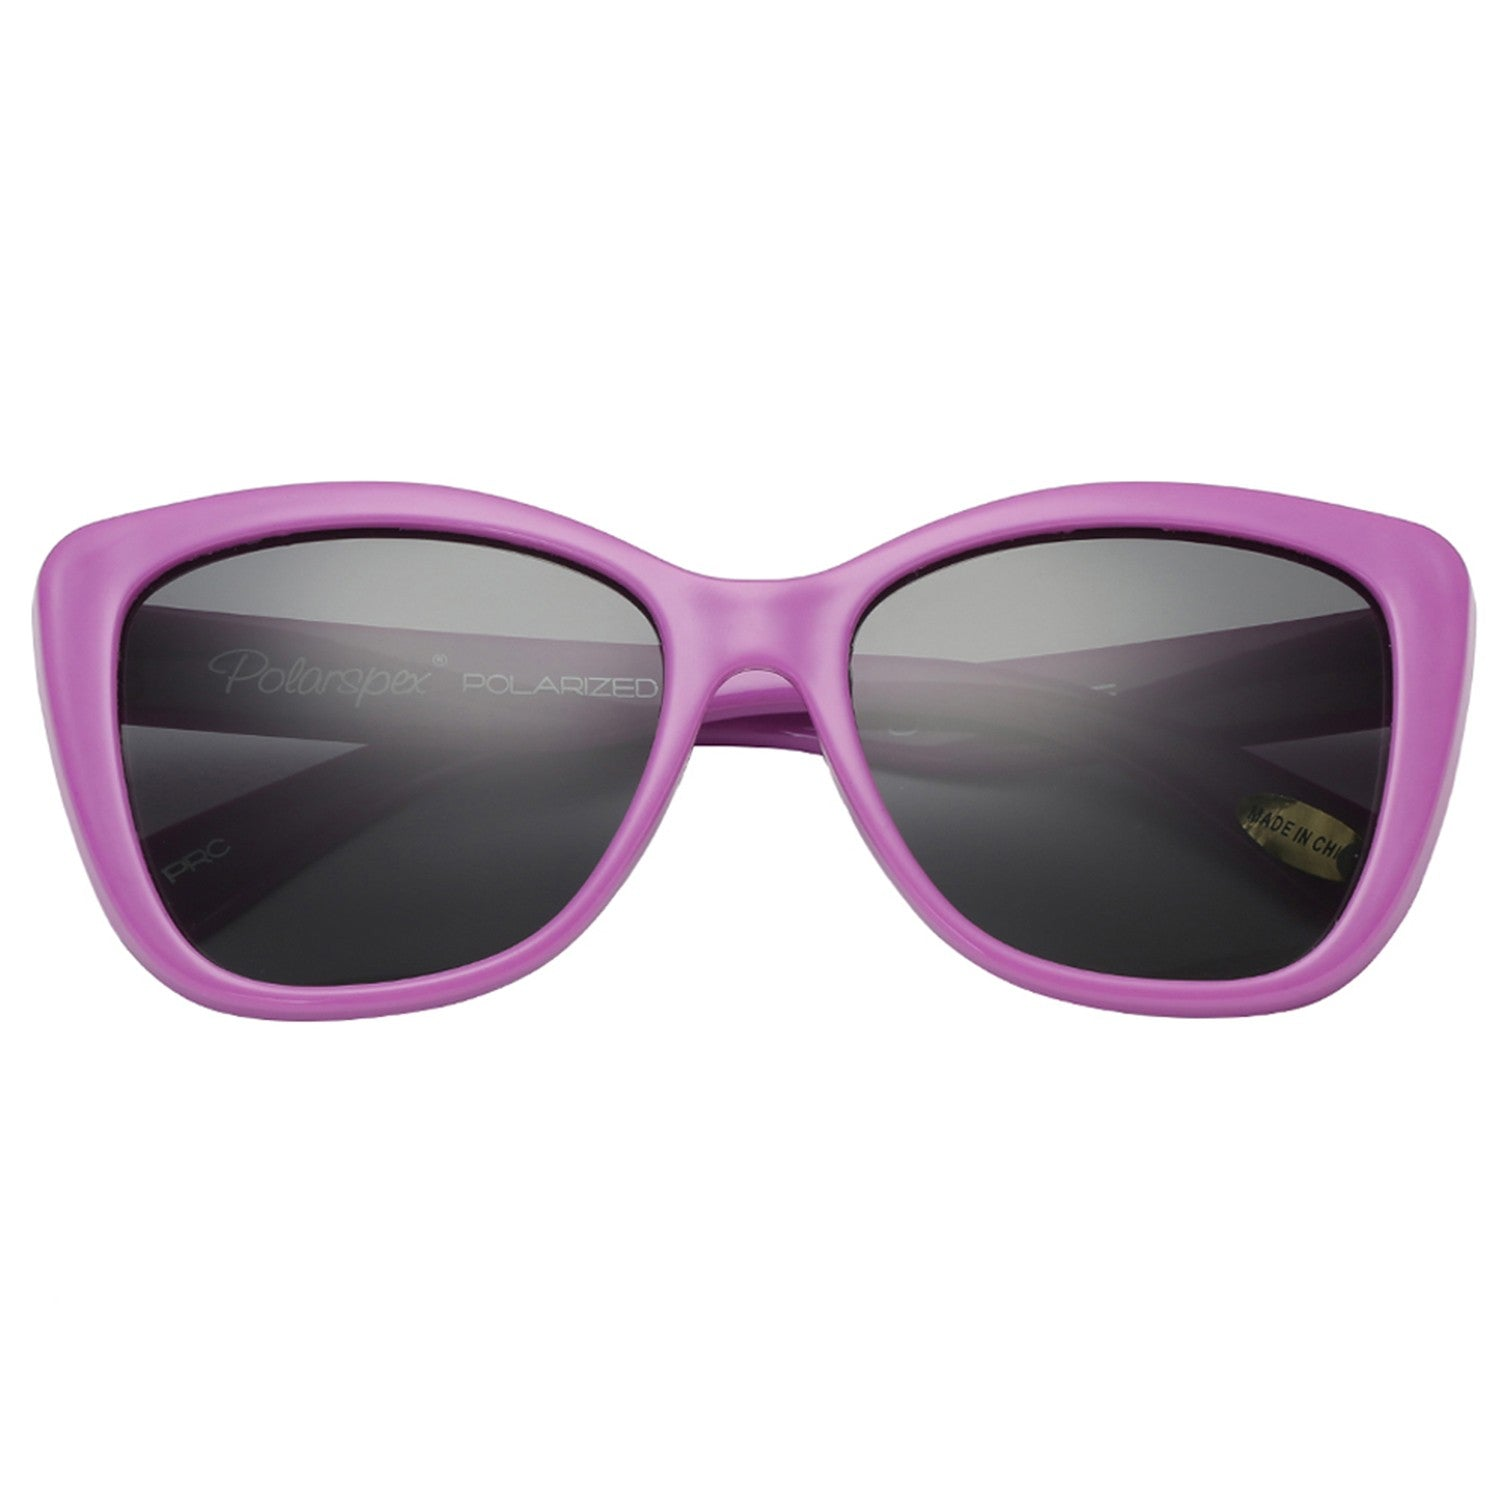 Polarspex Polarized Elastic Cateyes Style (BPA Free) Kids Sunglasses with Lavender Purple Frames and Polarized Smoke Lenses for Girls (Ages 3 - 10)